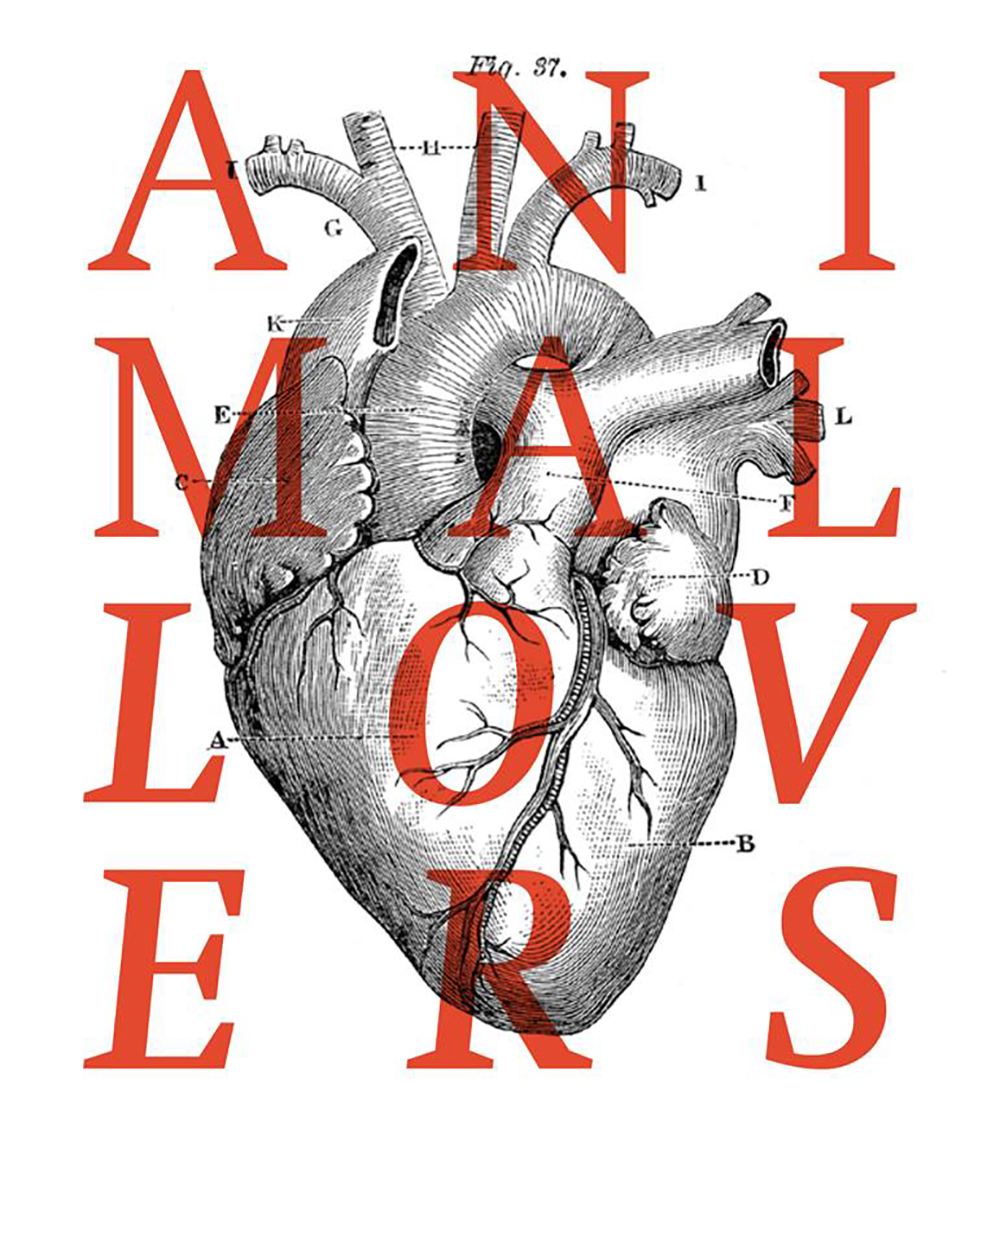 Image Credit: ANIMAL LOVERS Cover (2016 by Olivier Arcioli)